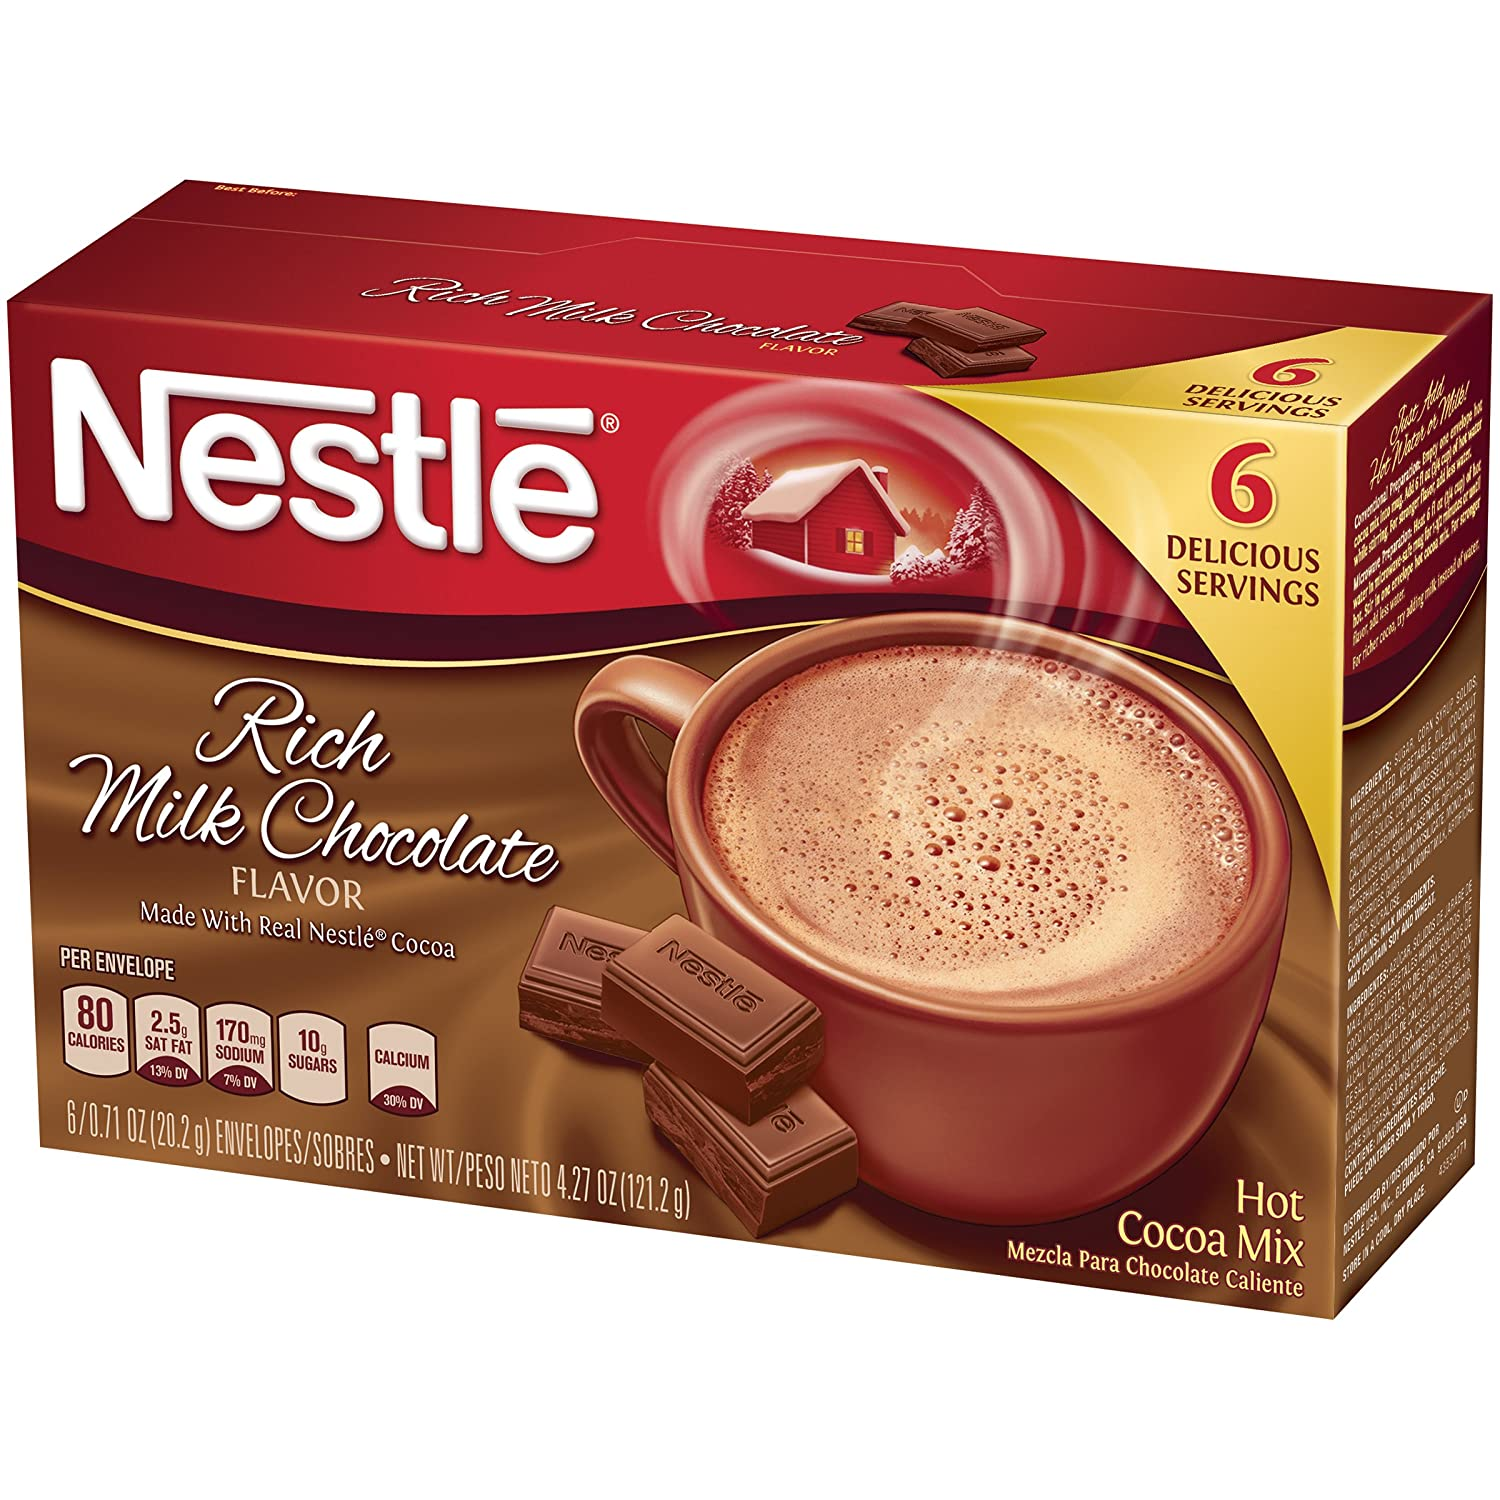 Nestle Hot Cocoa Rich Milk Chocolate Mix, 4.27 Ounce